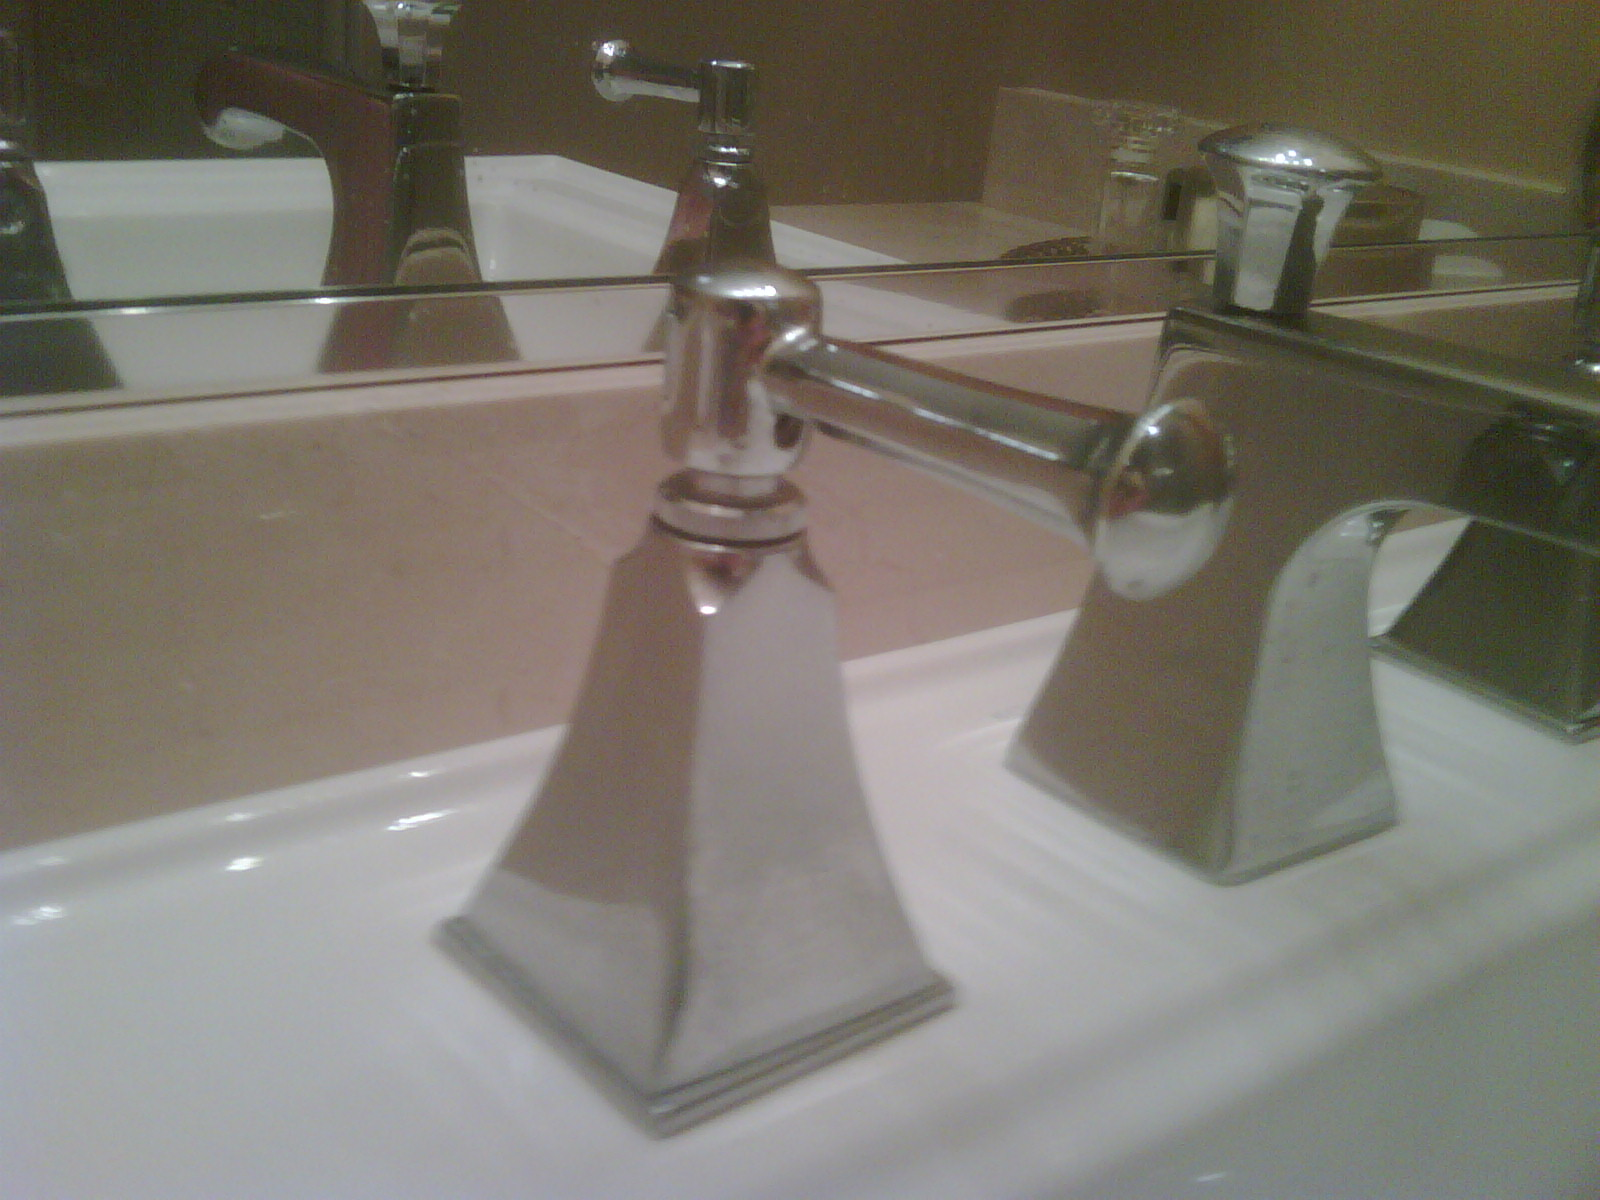 How do you remove a kohler bathroom sink faucet handle?